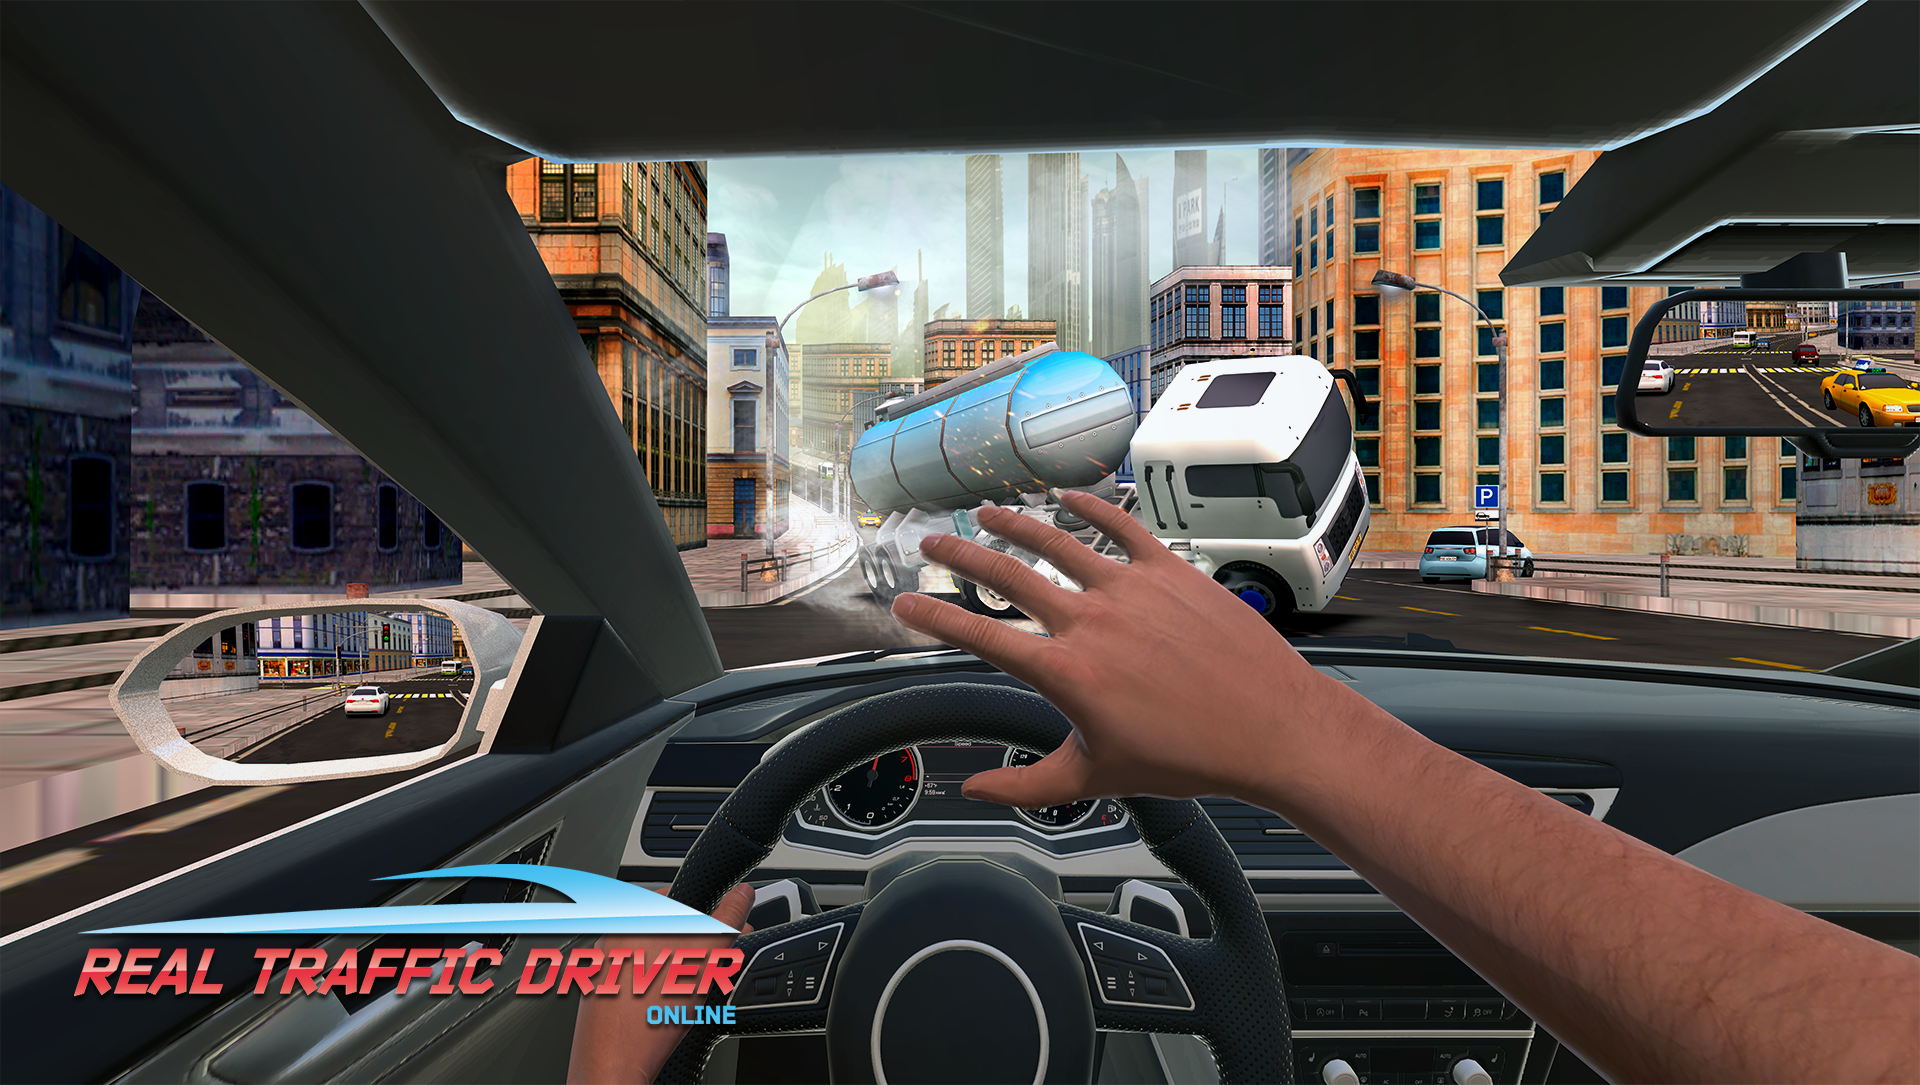 Real Traffic Driver: Online